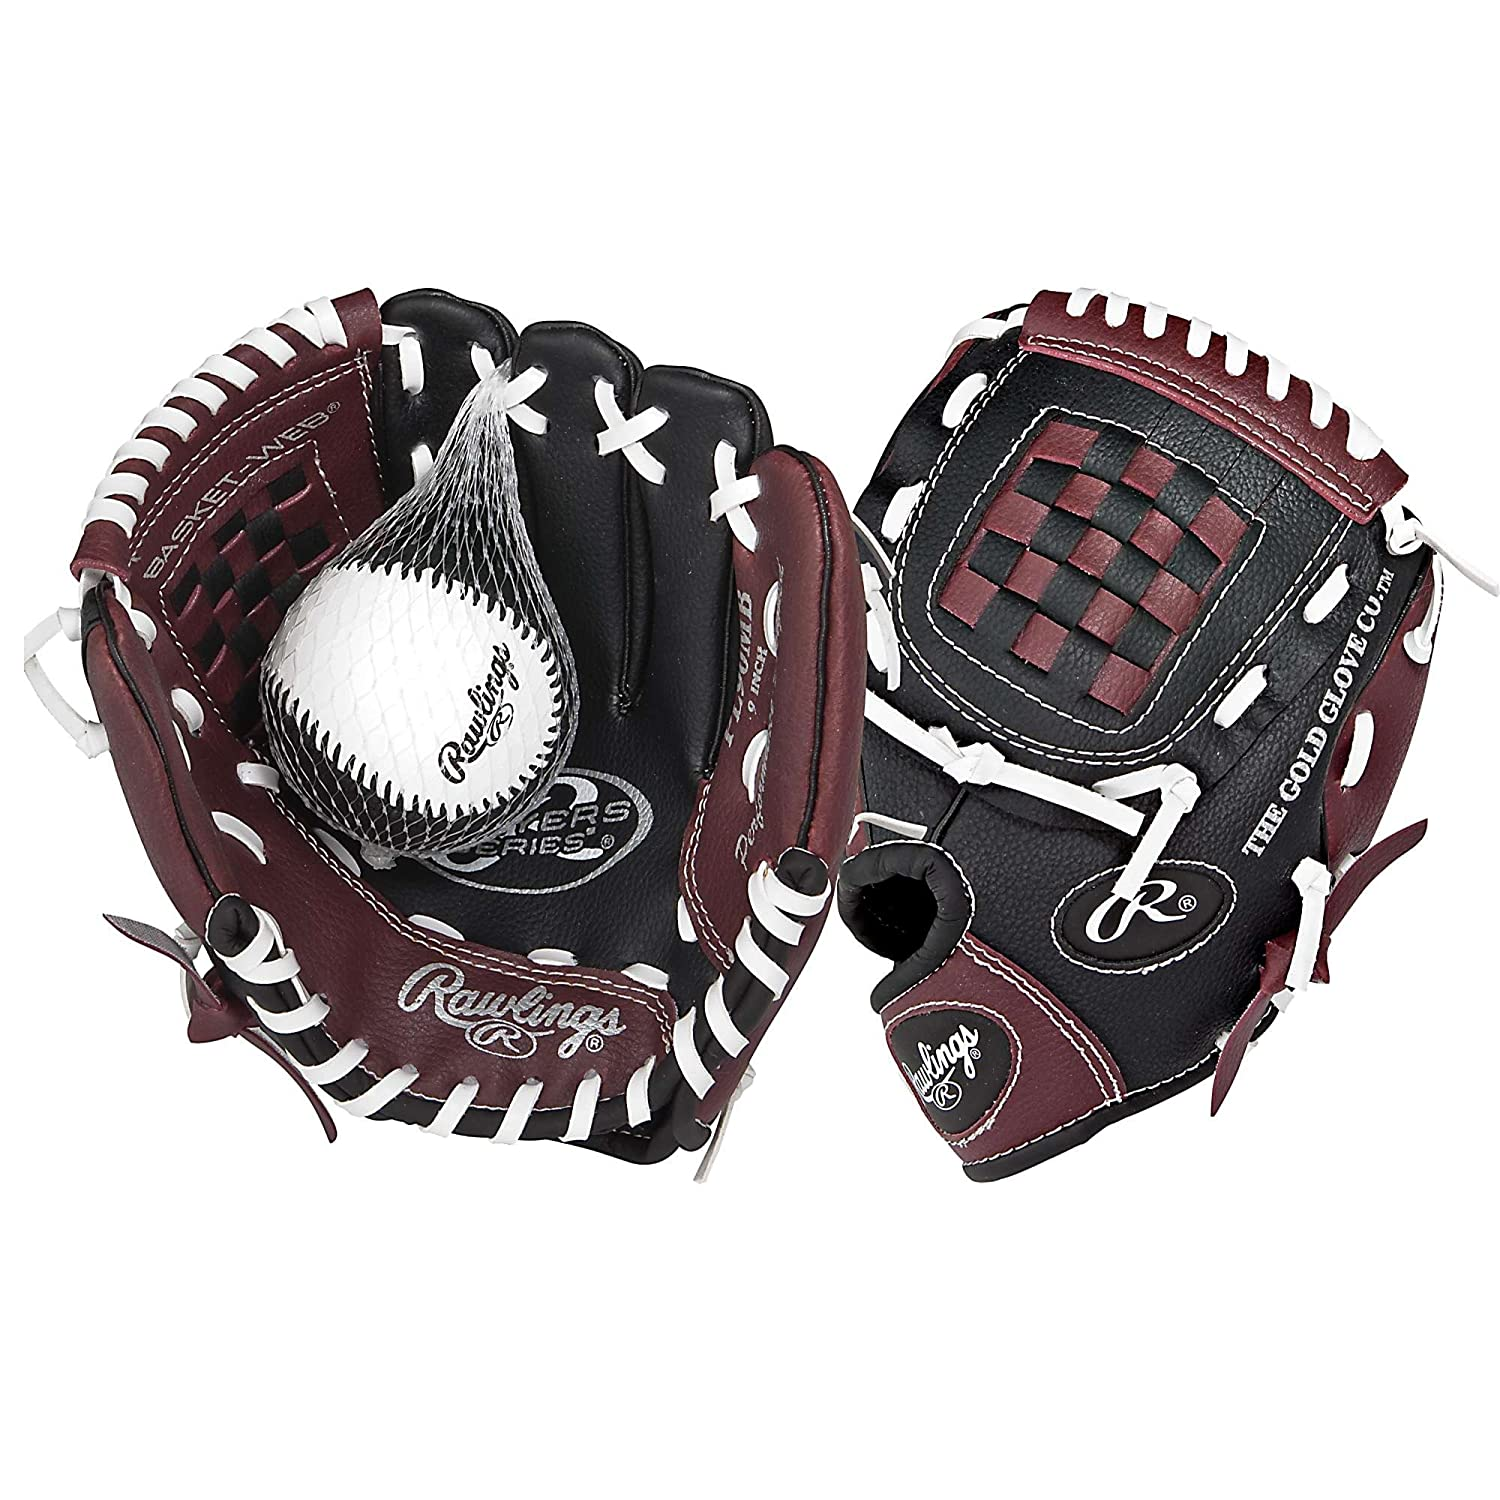 Youth Baseball Glove Leather : Top best youth baseball gloves reviews in updated